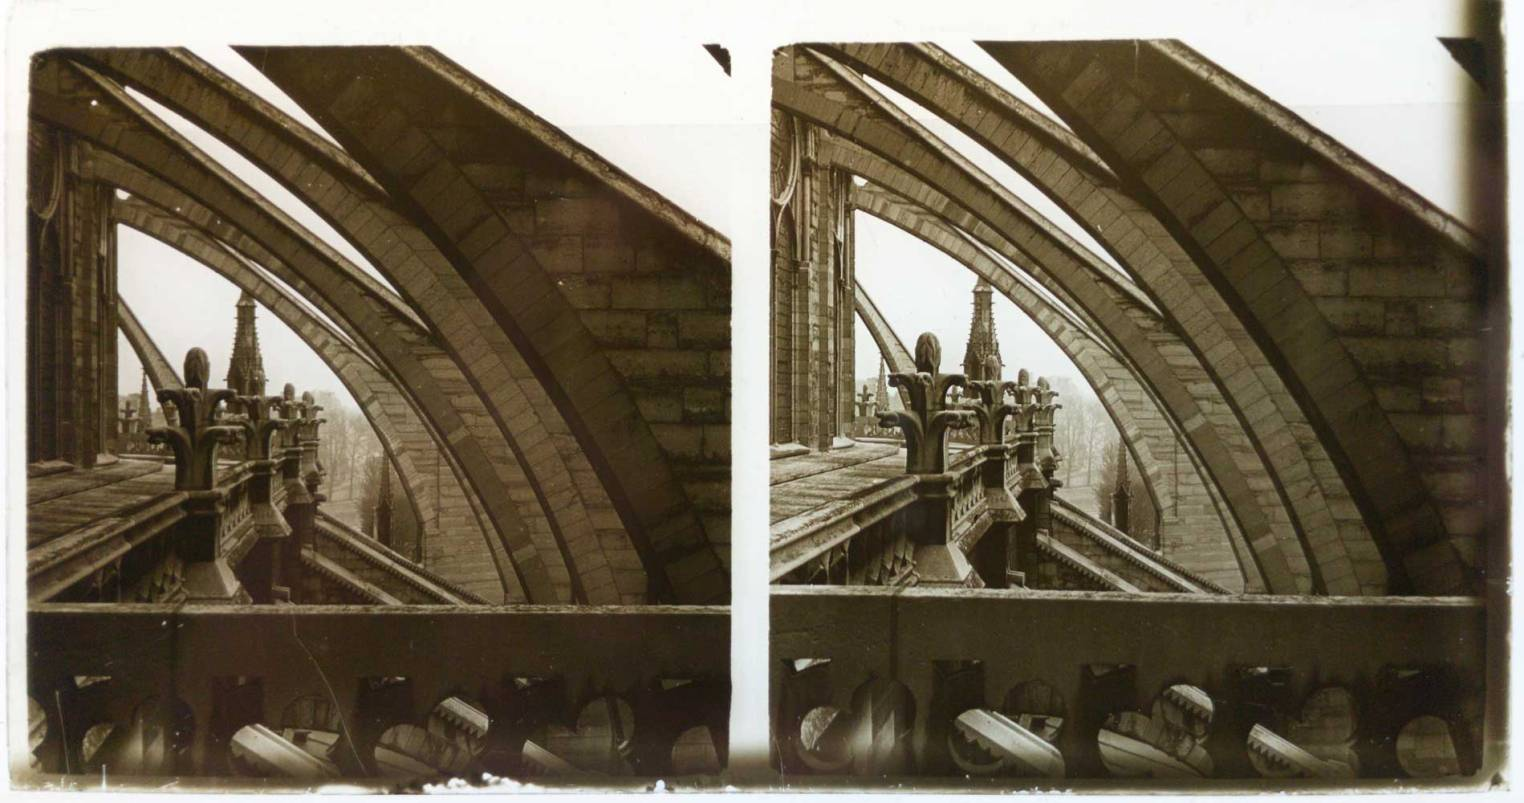 Stereoscopic Glass Positive from 1900-1920 - © MIND.WORK